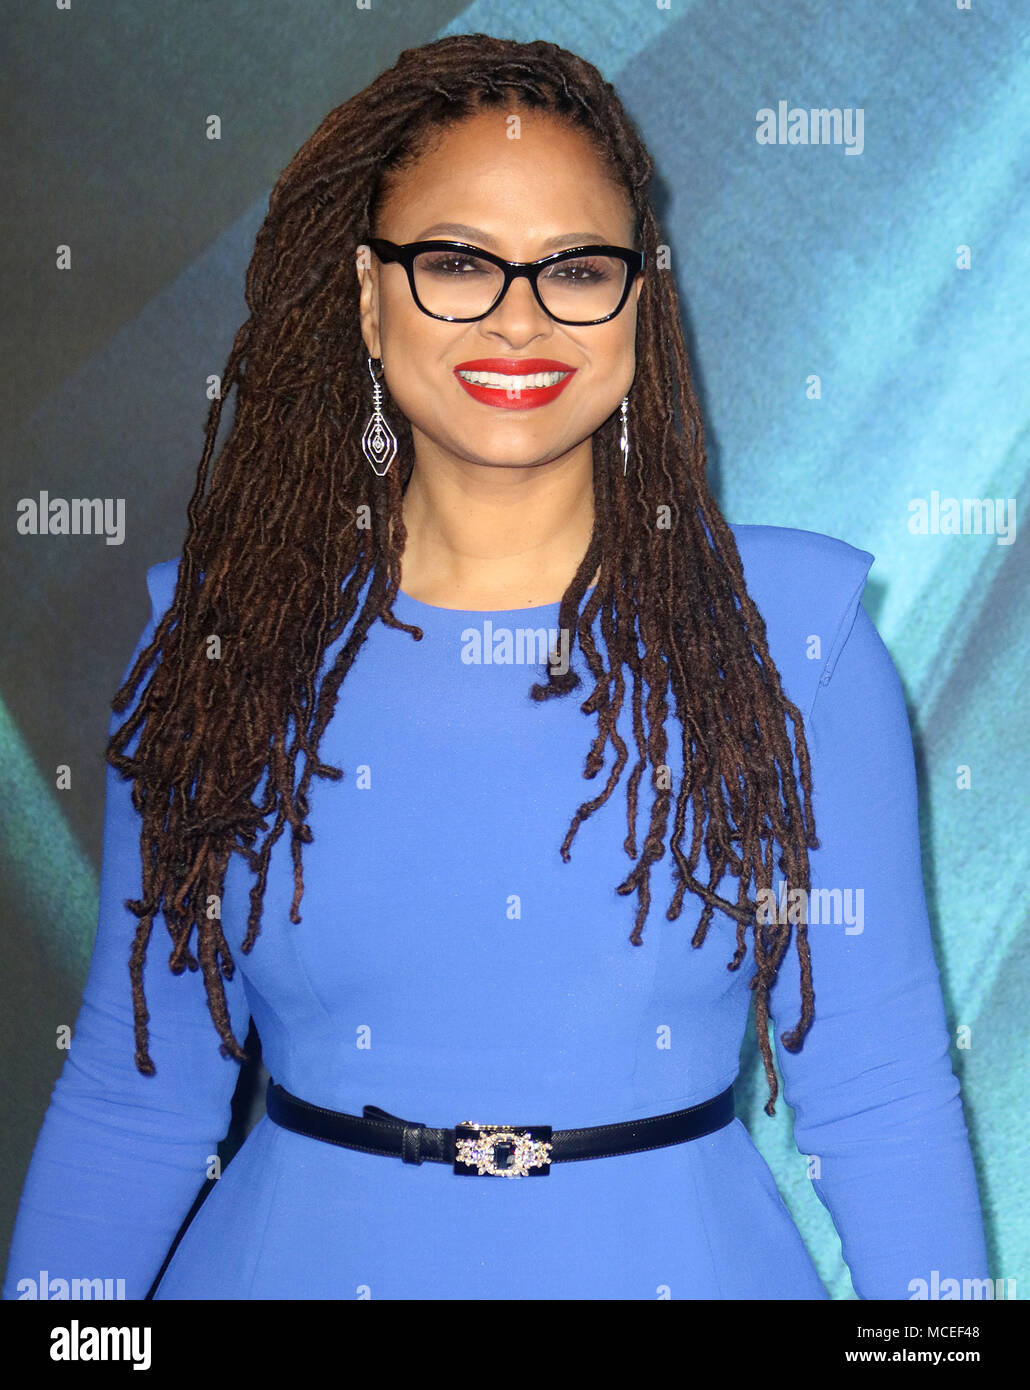 Mar 13, 2018  - Ava DuVernay attending European Premiere of A Wrinkle in Time, BFI IMAX in London, England, UK - Stock Image